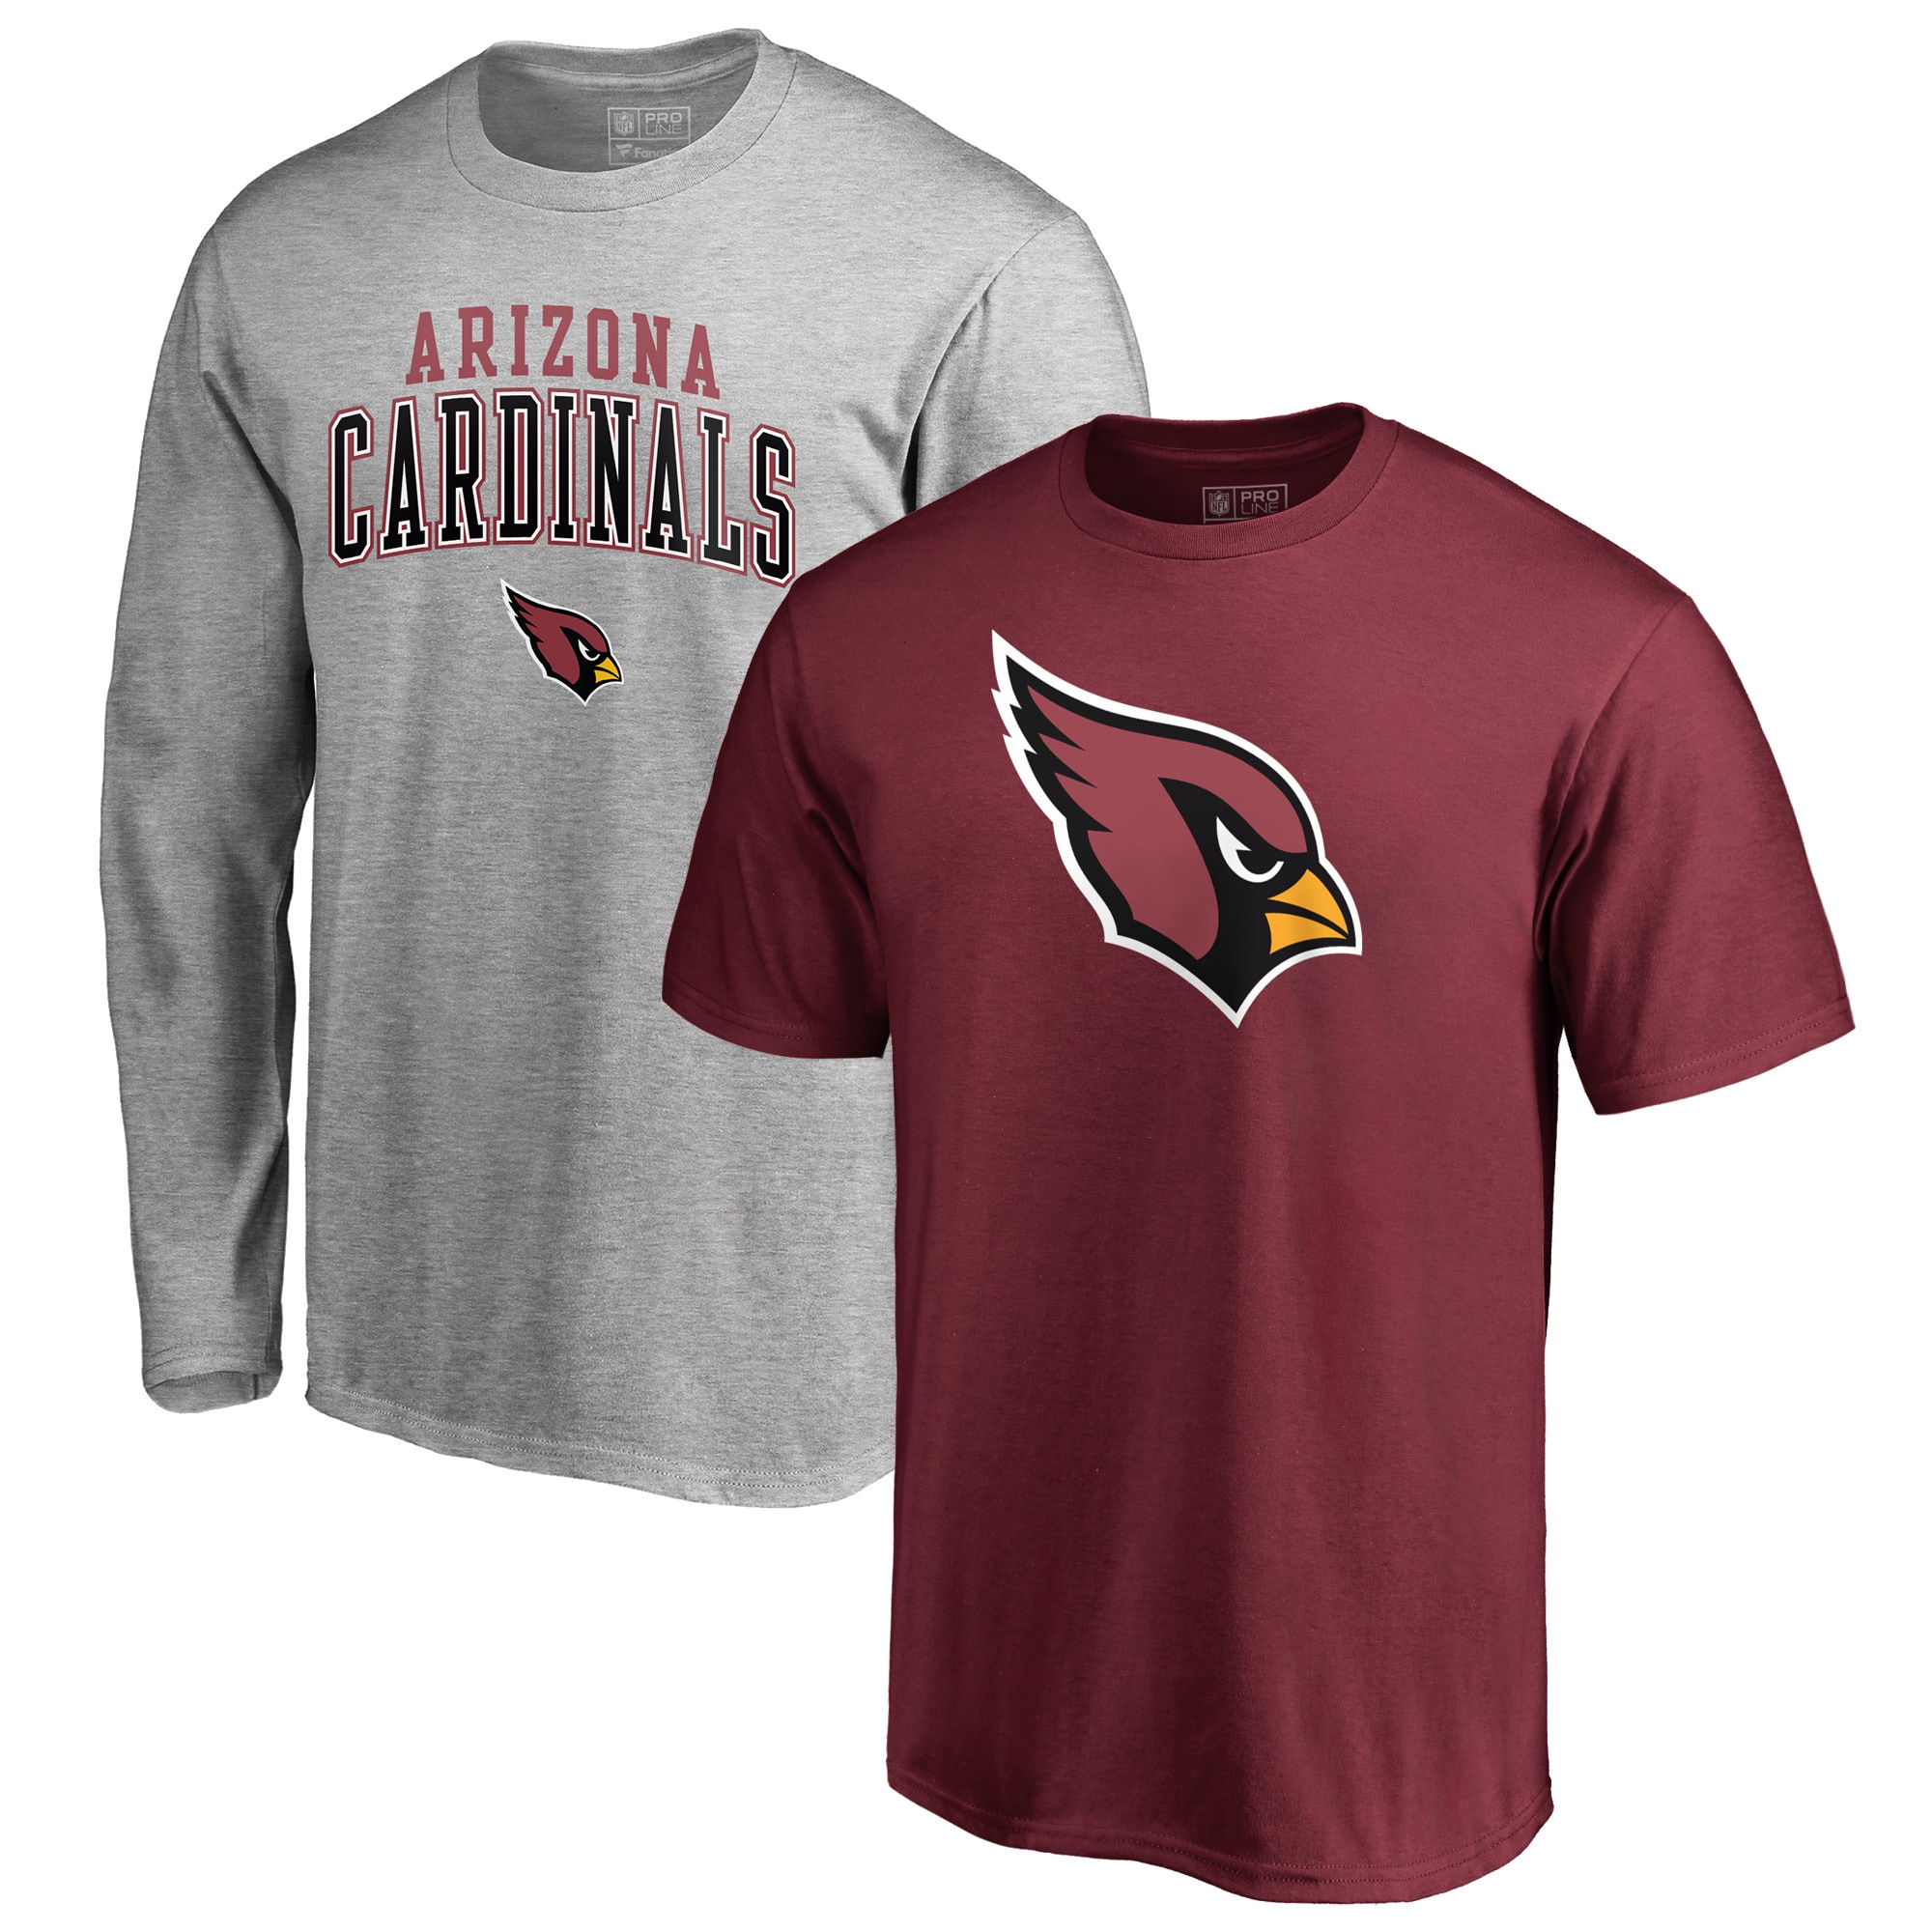 Arizona Cardinals NFL Pro Line by Fanatics Branded Square Up T-Shirt Combo Set - Cardinal/Heathered Gray